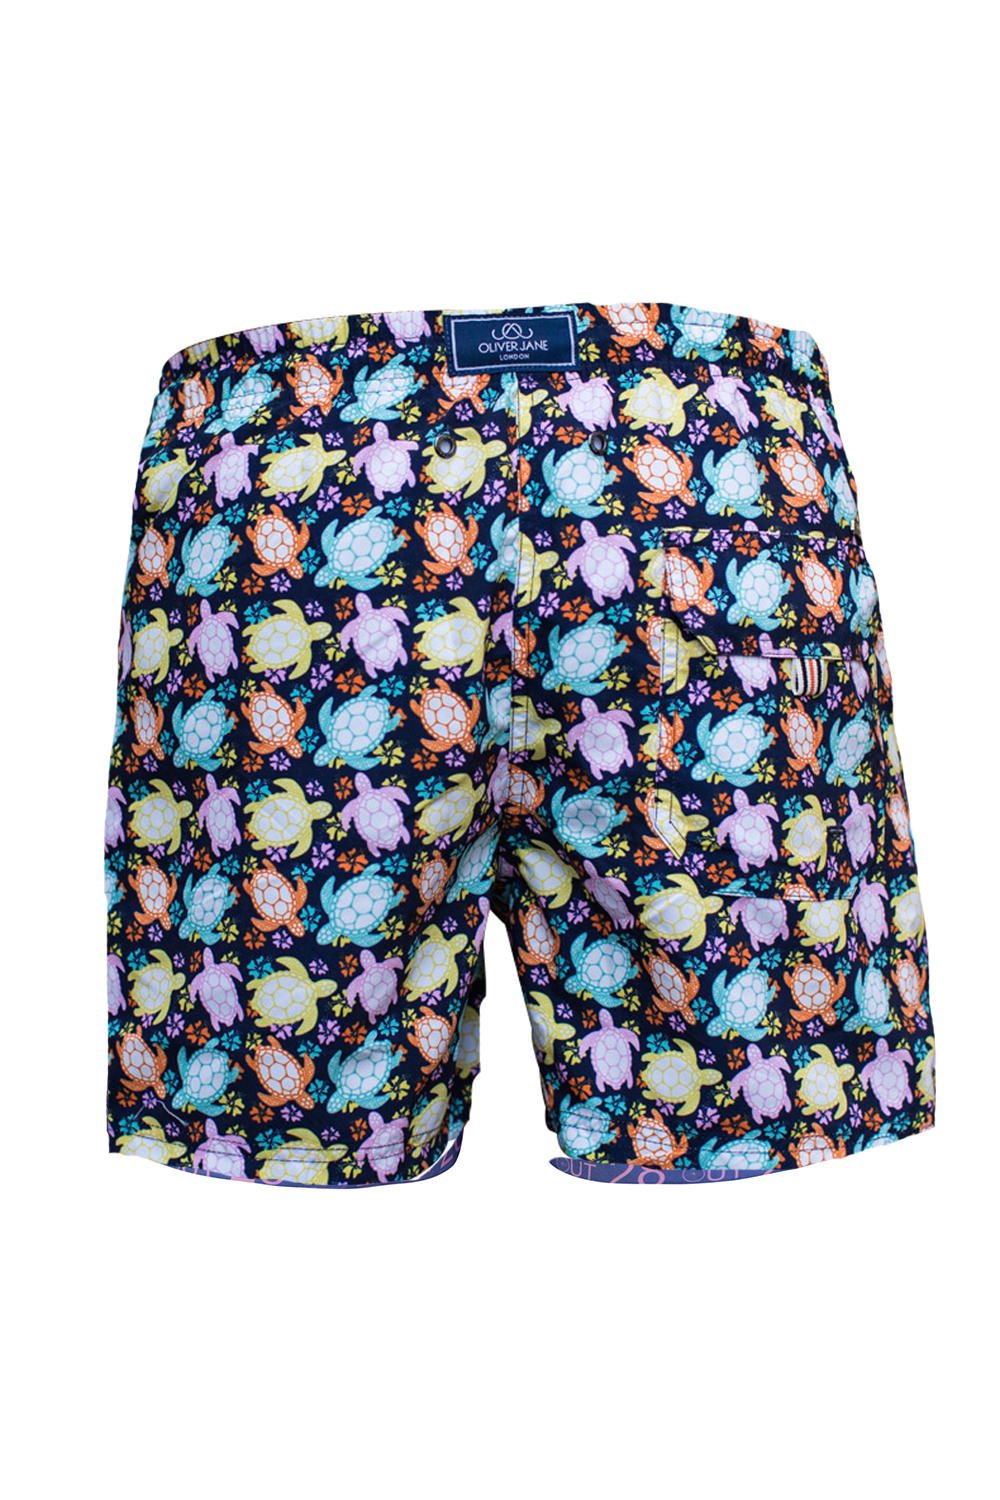 The Beach Turtle Black Swim Short